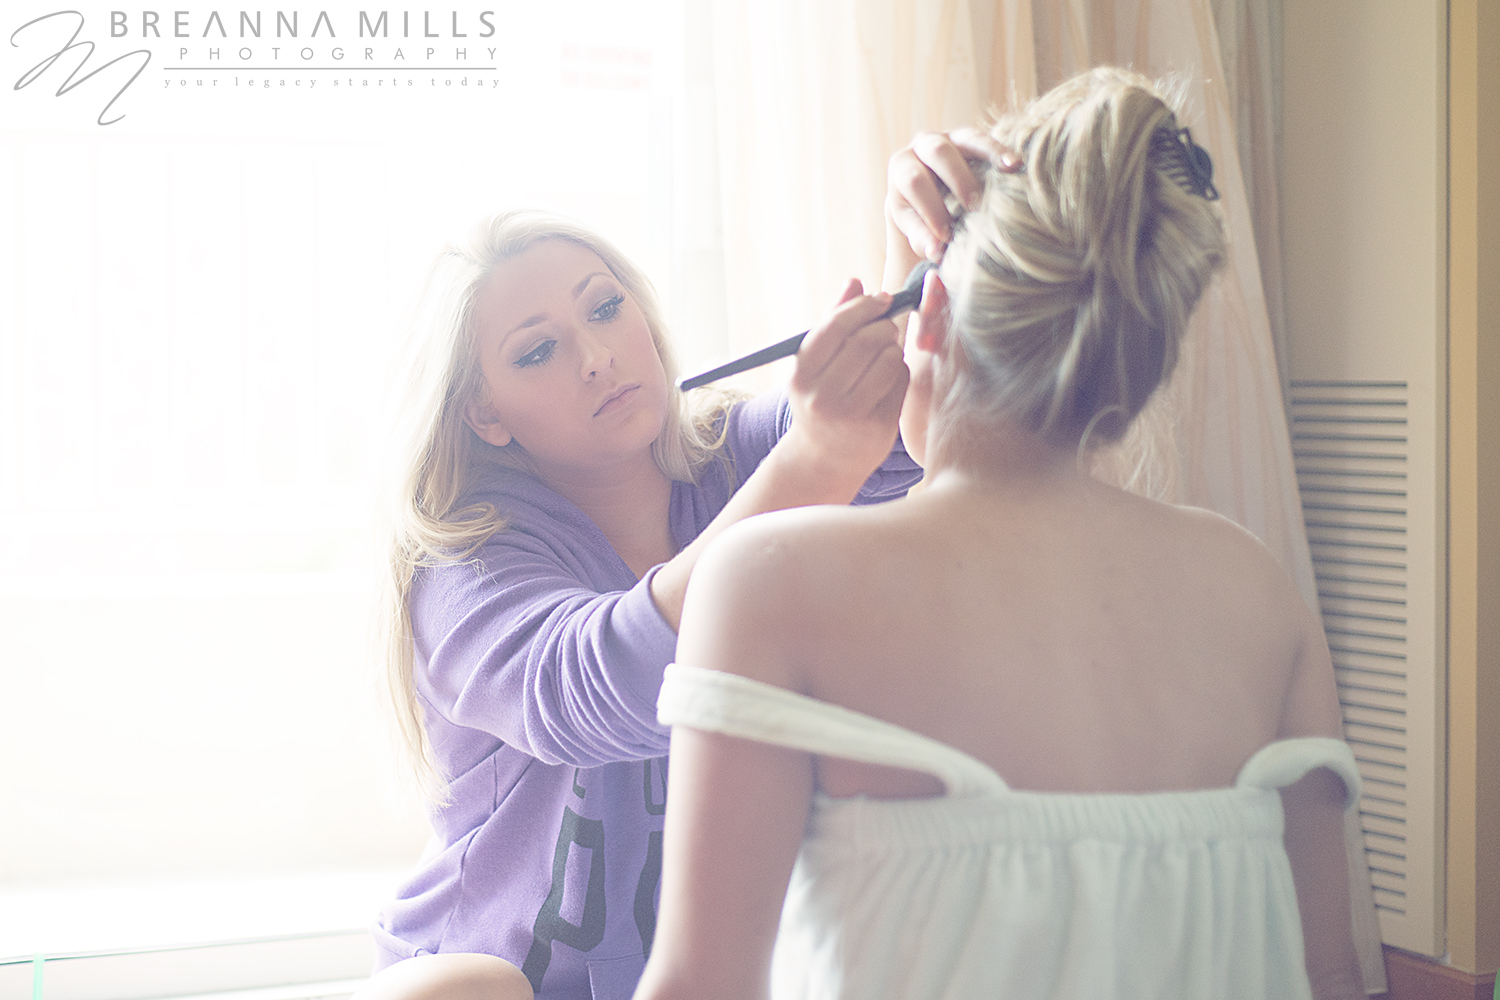 Johnson City wedding photographer Breanna Mills Photography captures bridesmaids getting ready for vineyard wedding at Meadowview Convention Center.  Preparing for wedding at the Corey Ippolito Winery wedding venue.